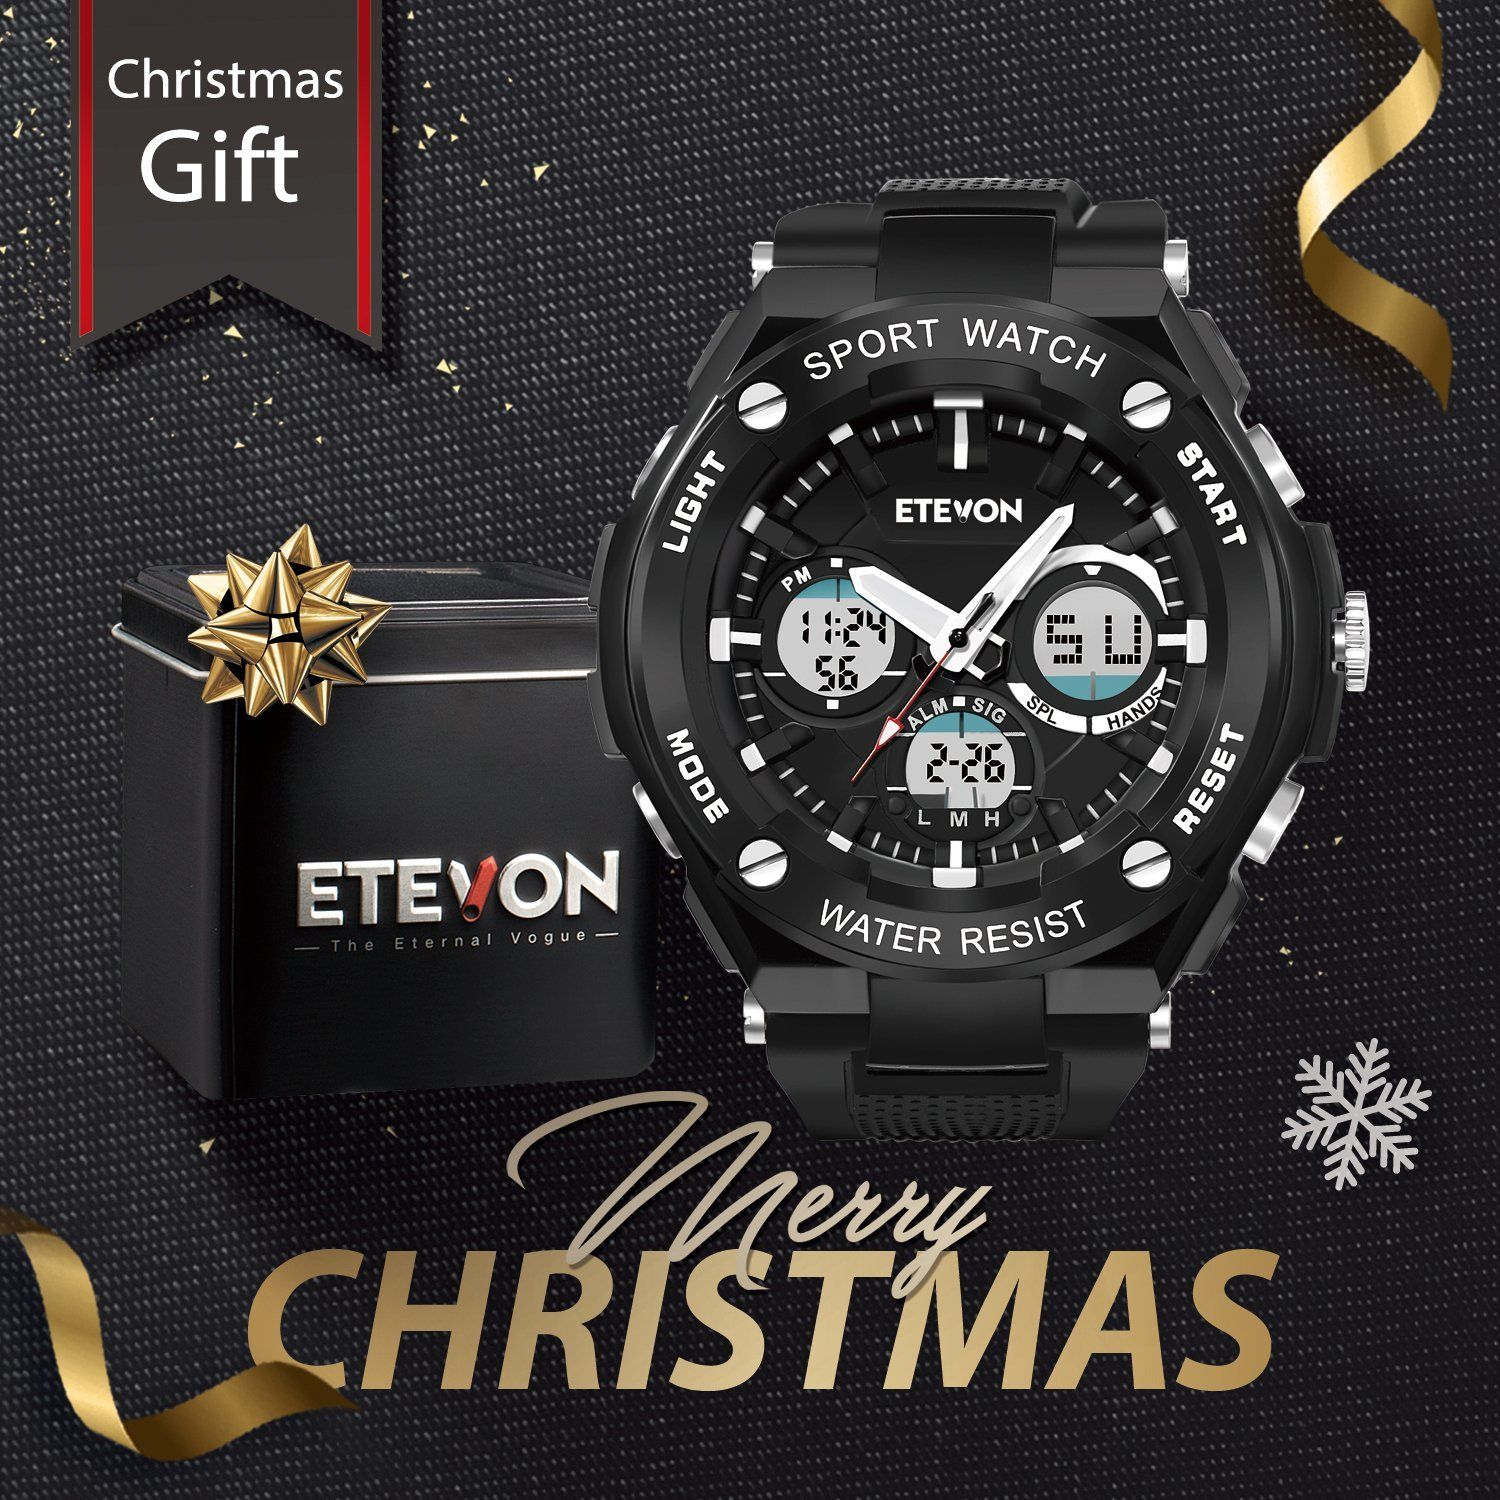 Gifts for Cyclists Men ✲Christmas Gifts✲ ETEVON Menâ